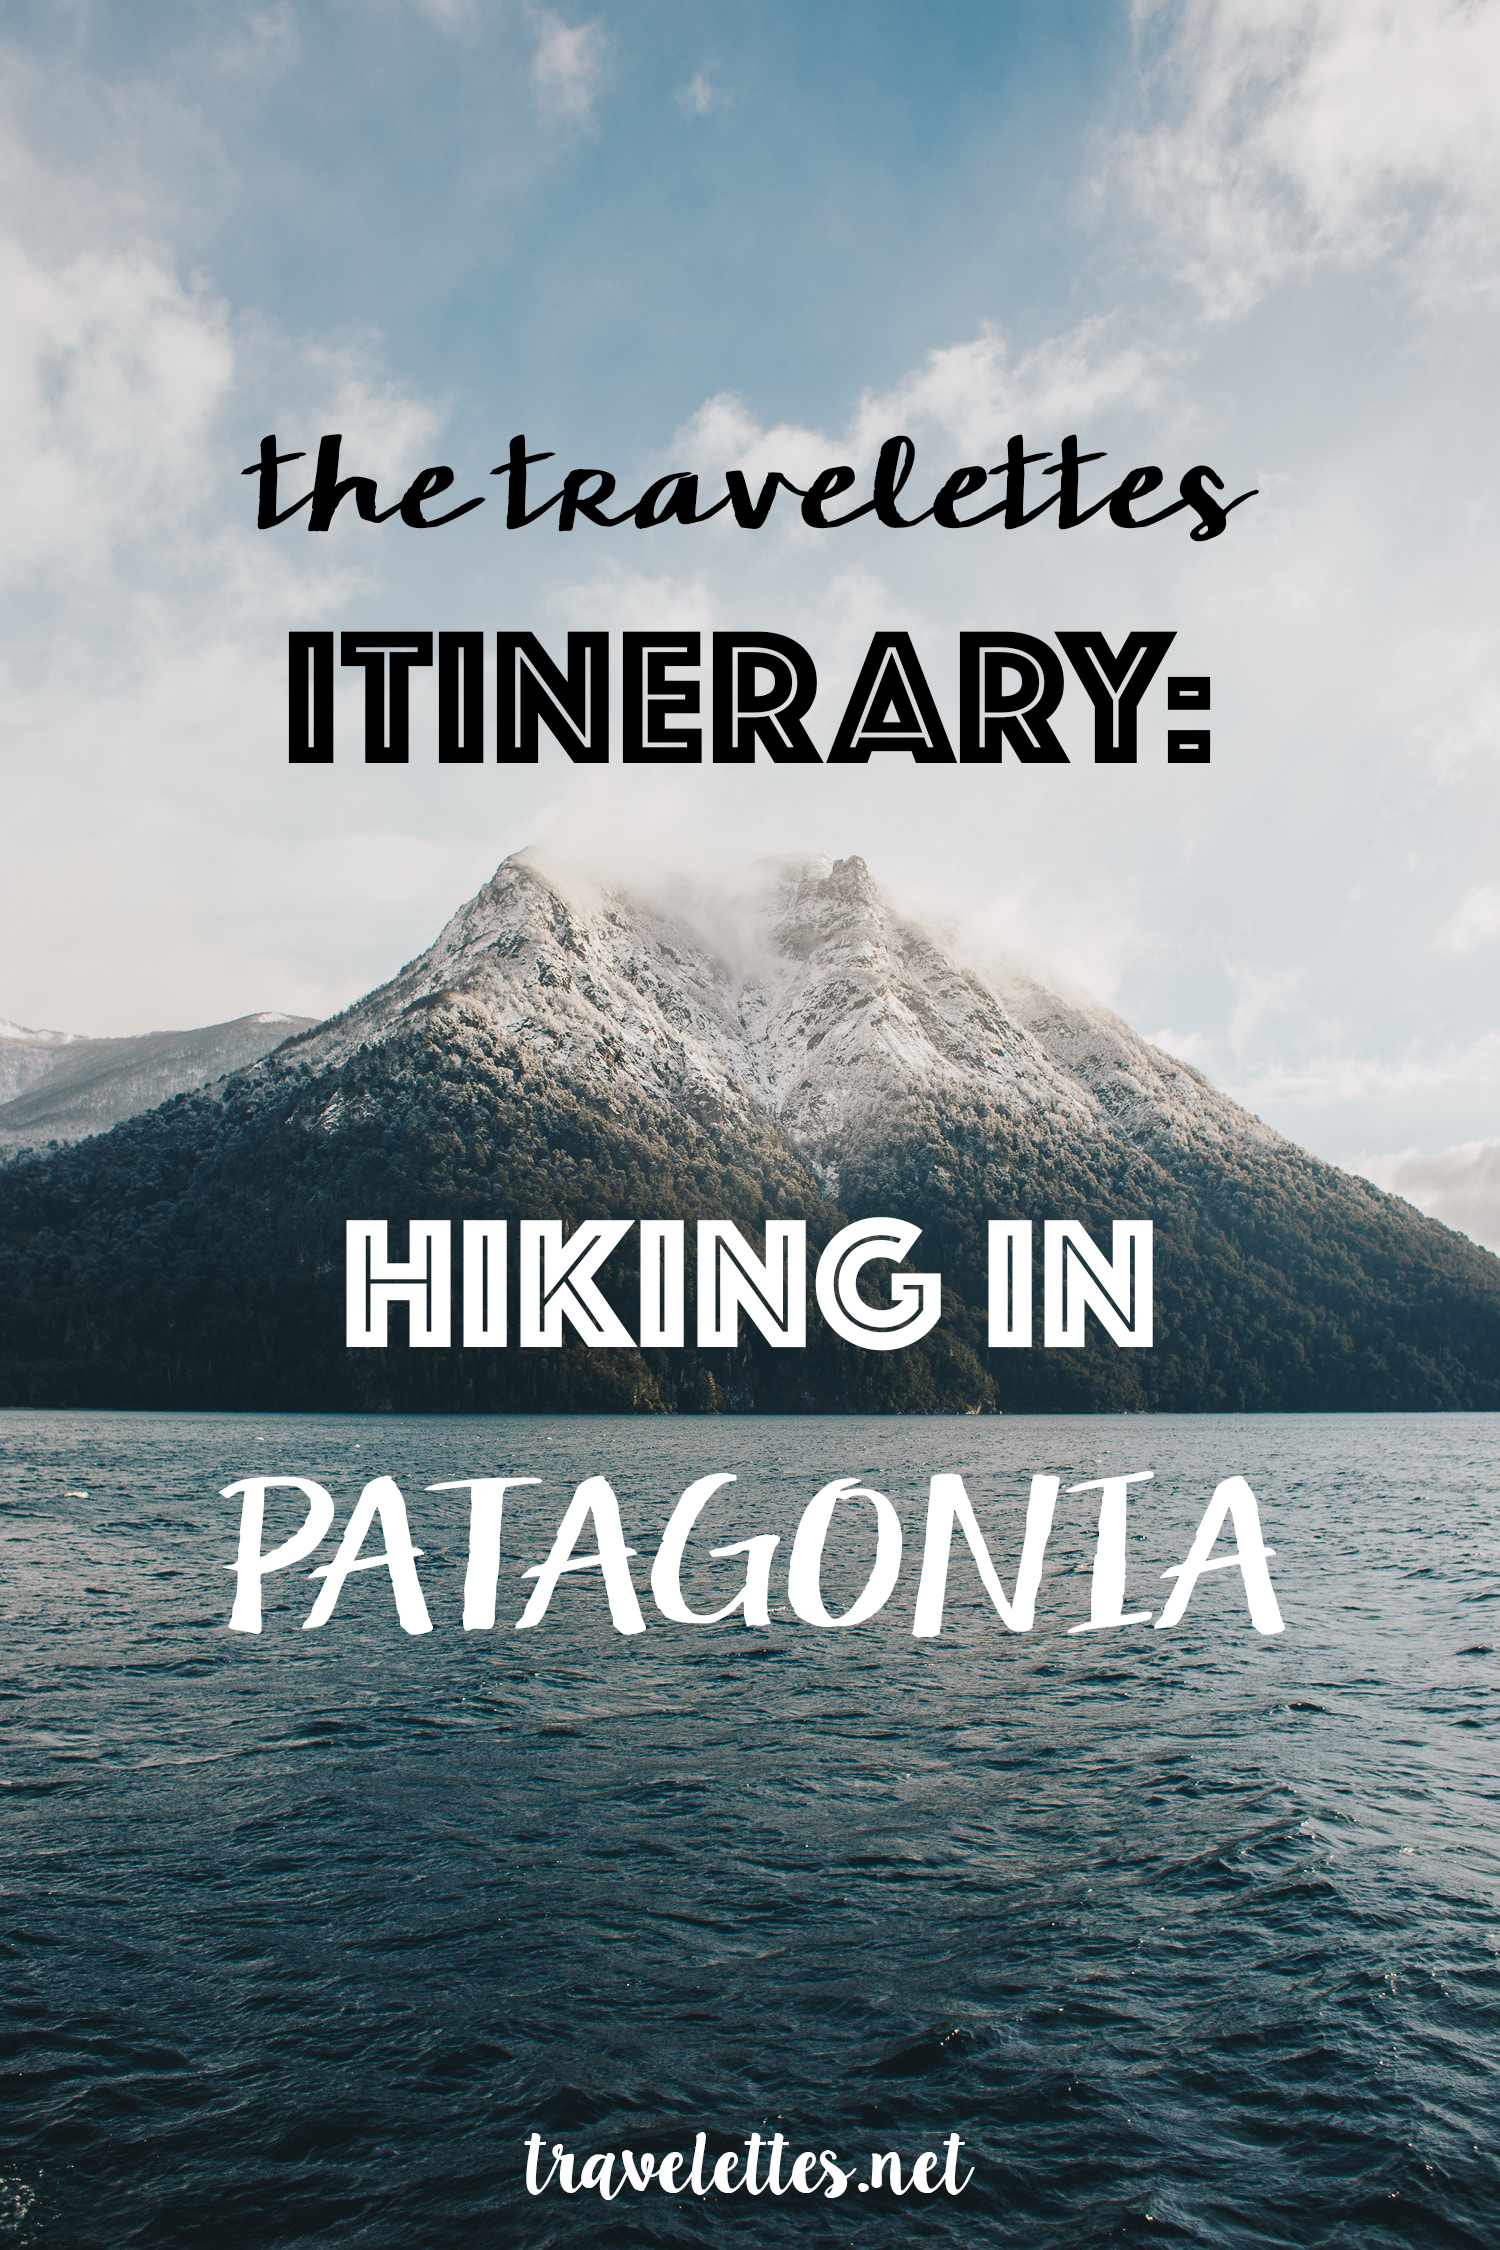 The Travelettes Itinerary: Hiking in Patagonia